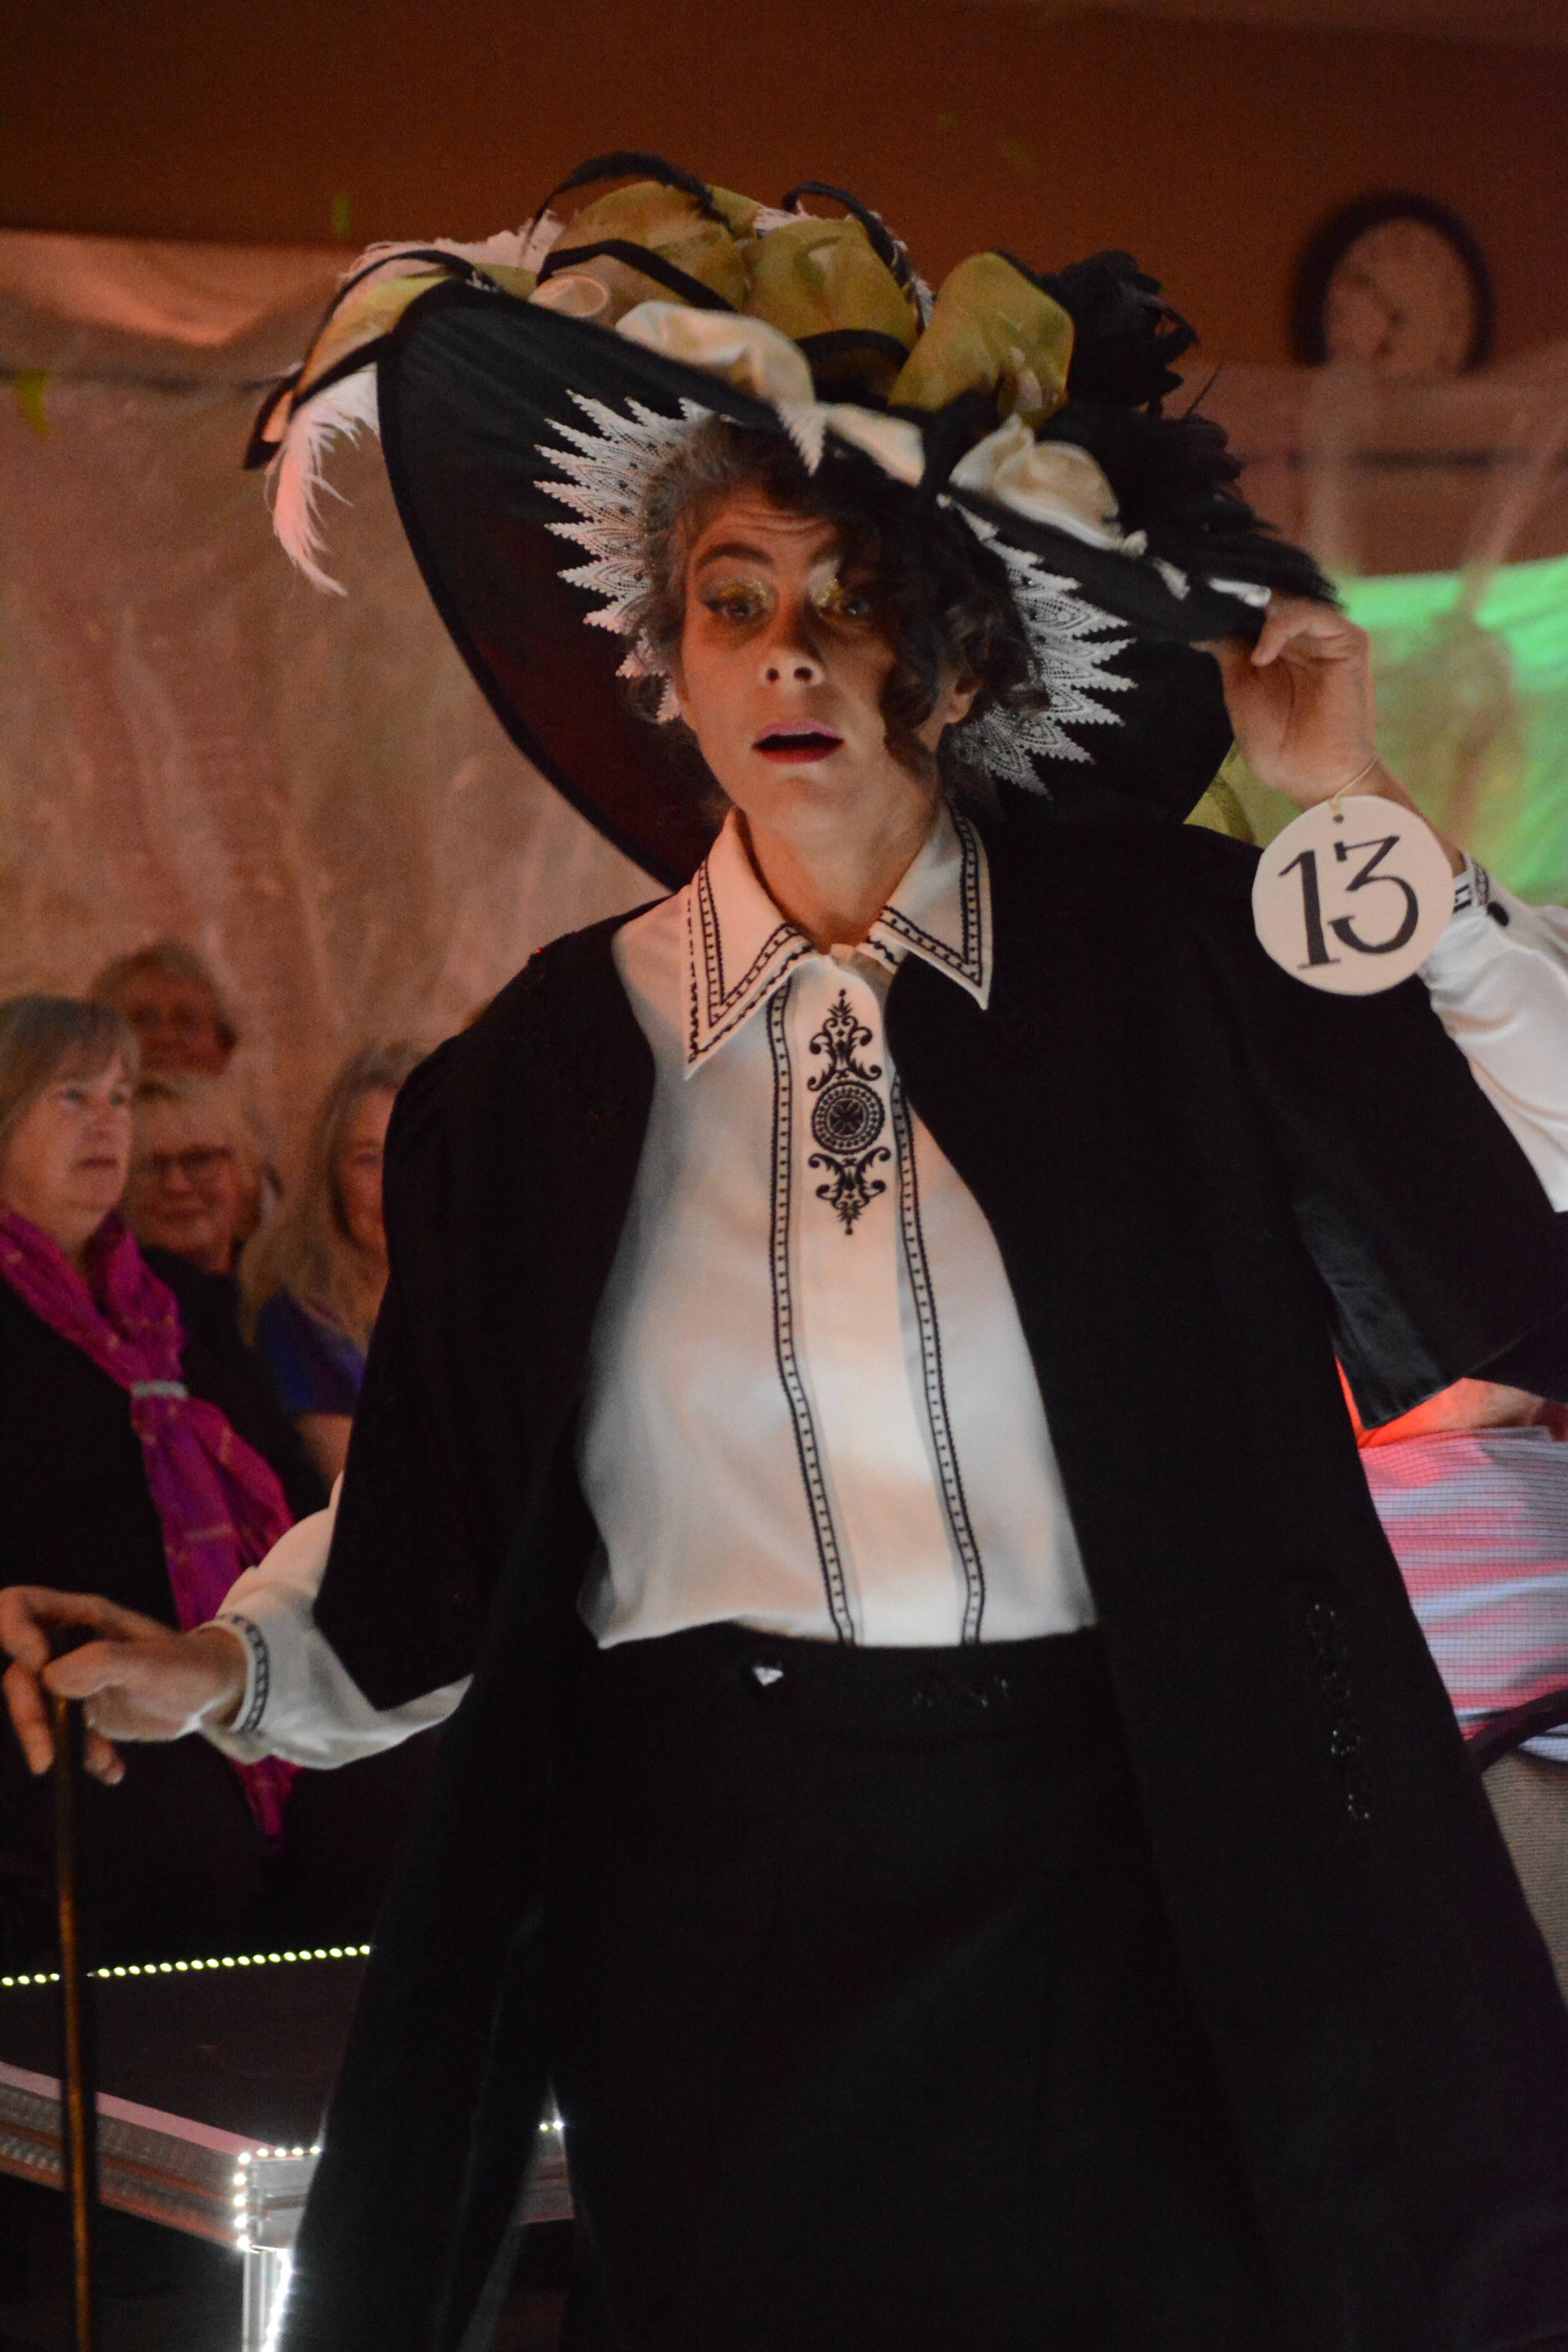 """Christine Kulcheski models """"Time Walker"""" by Marie Walker, based on a photograph of her husband's grandmother, at the 2018 Wearable Arts on Nov. 17, 2018, in Homer, Alaska. (Photo by Michael Armstrong/Homer News)"""